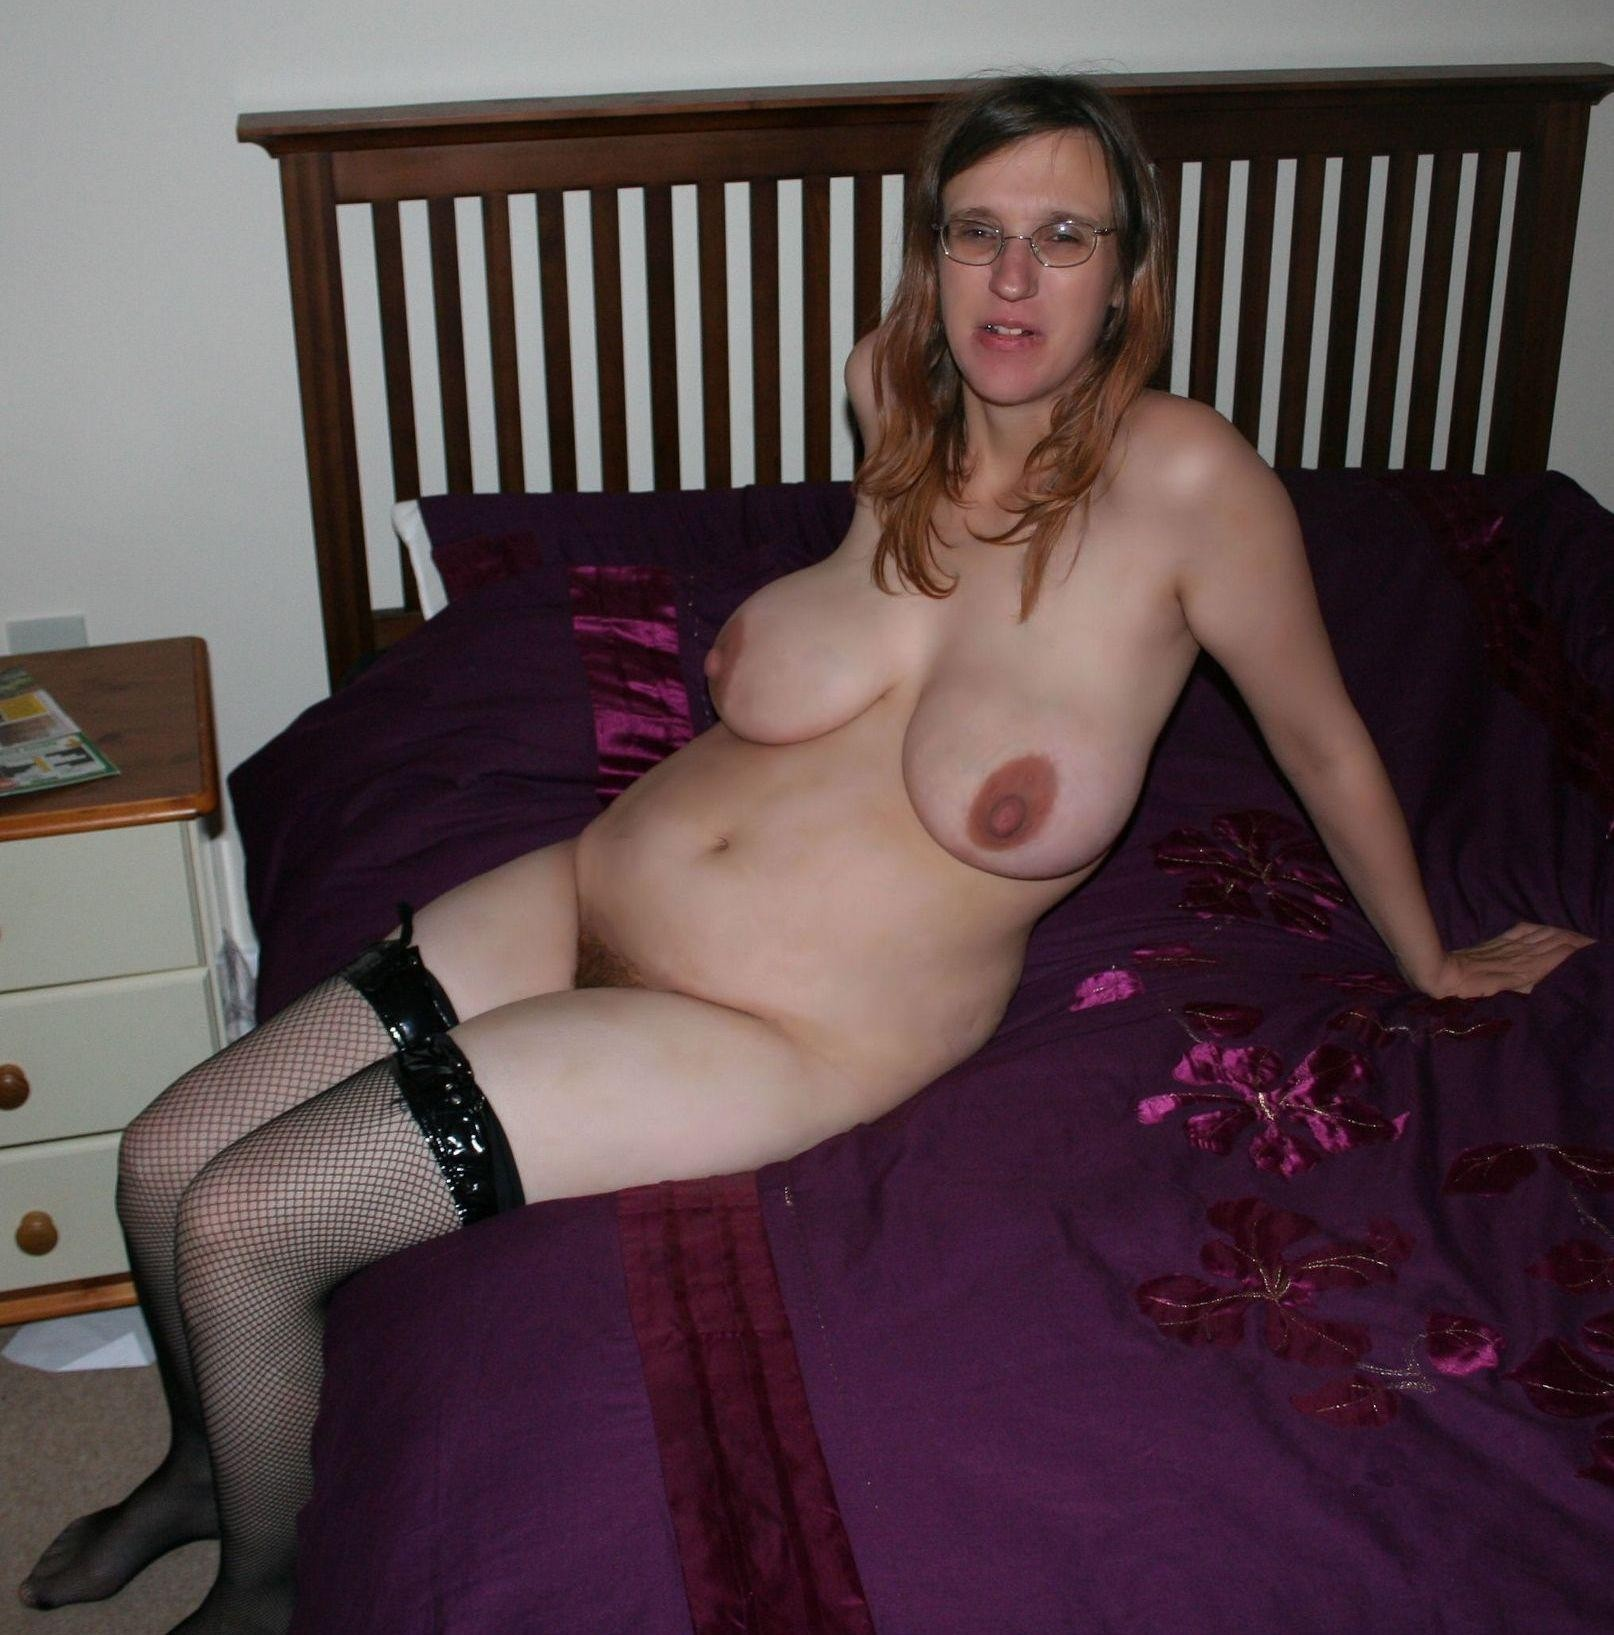 Nude amateur ugly women, daughter after school sex movies